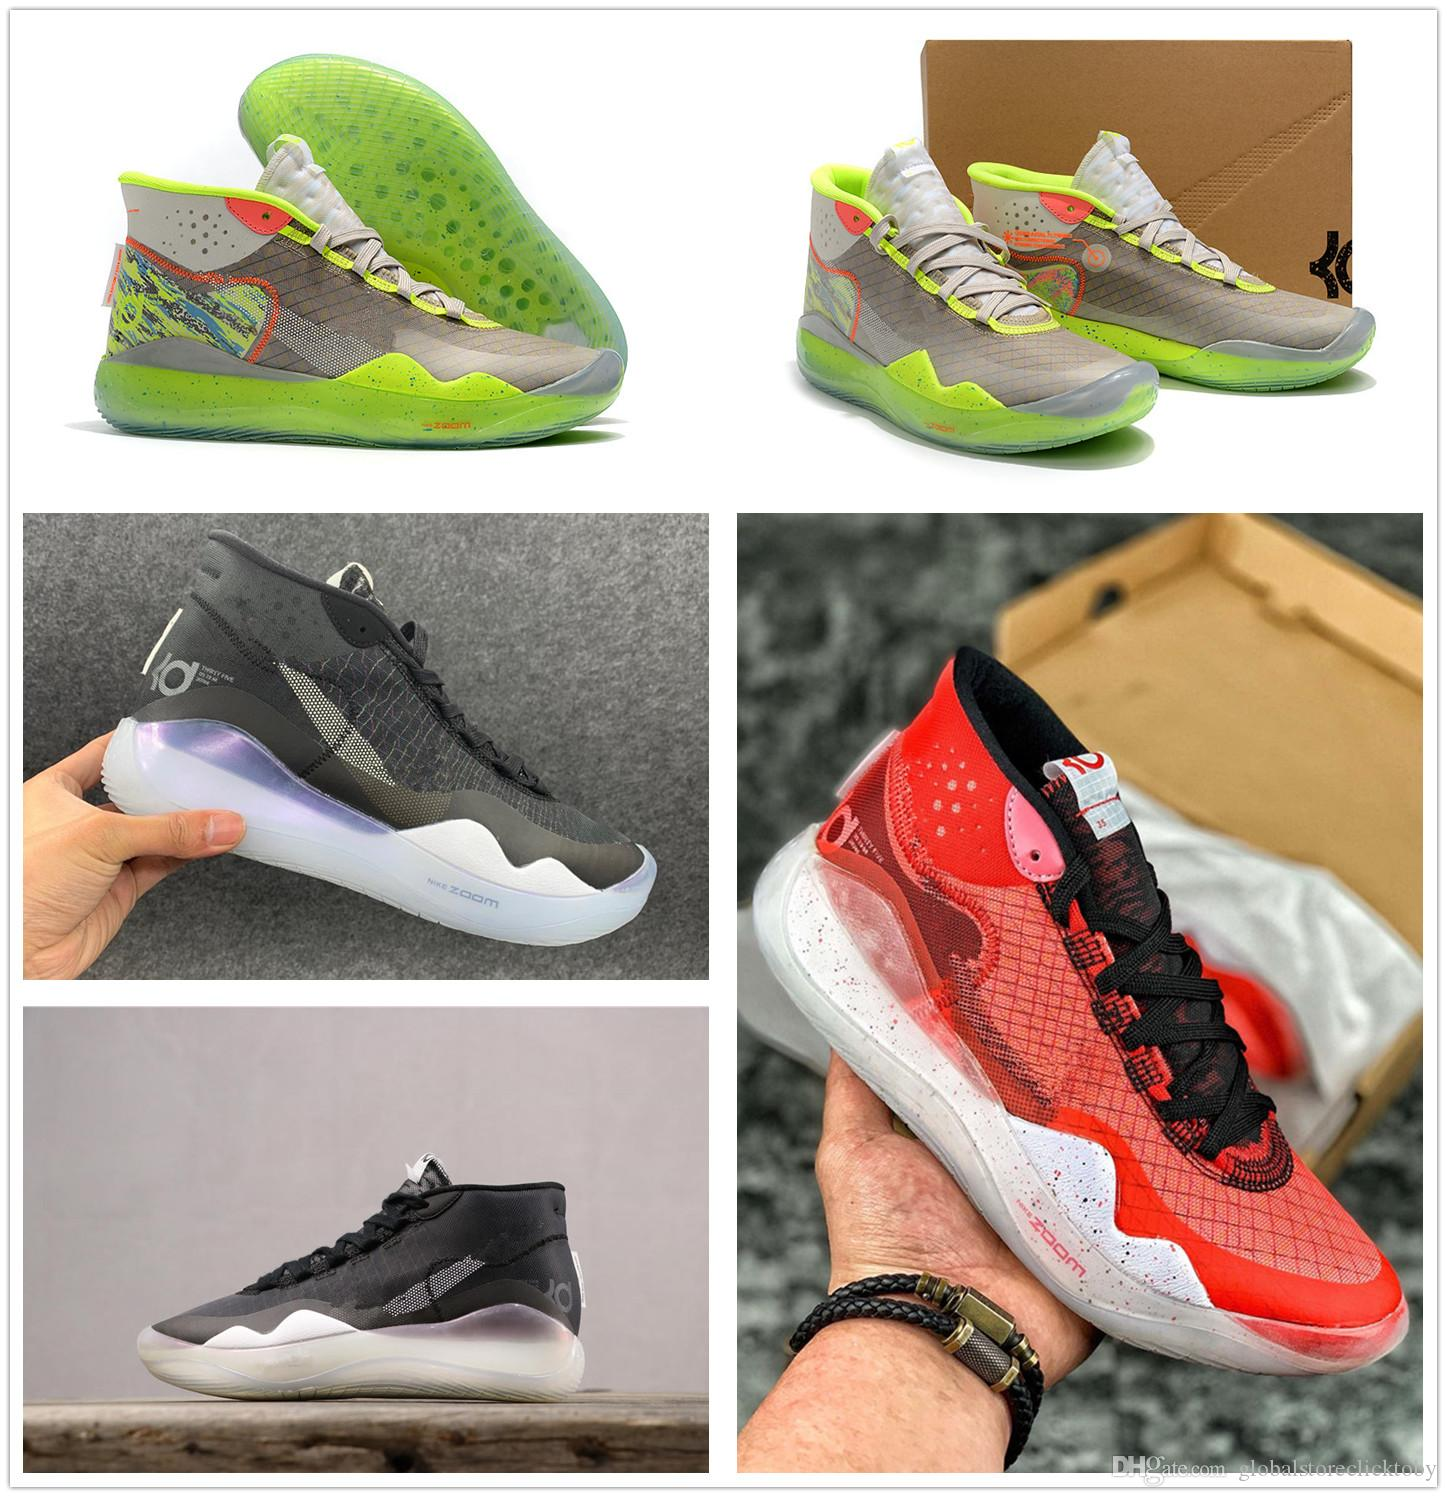 e6358056dc7 2019 2019 Green Red Black KD 12 University Red AR4229 600 KD12 90s Kid  AR4230 900 Zoom KD12 EP AR4230 001 Size Us7 Us12 With Box From  Globalstoreclicktoby